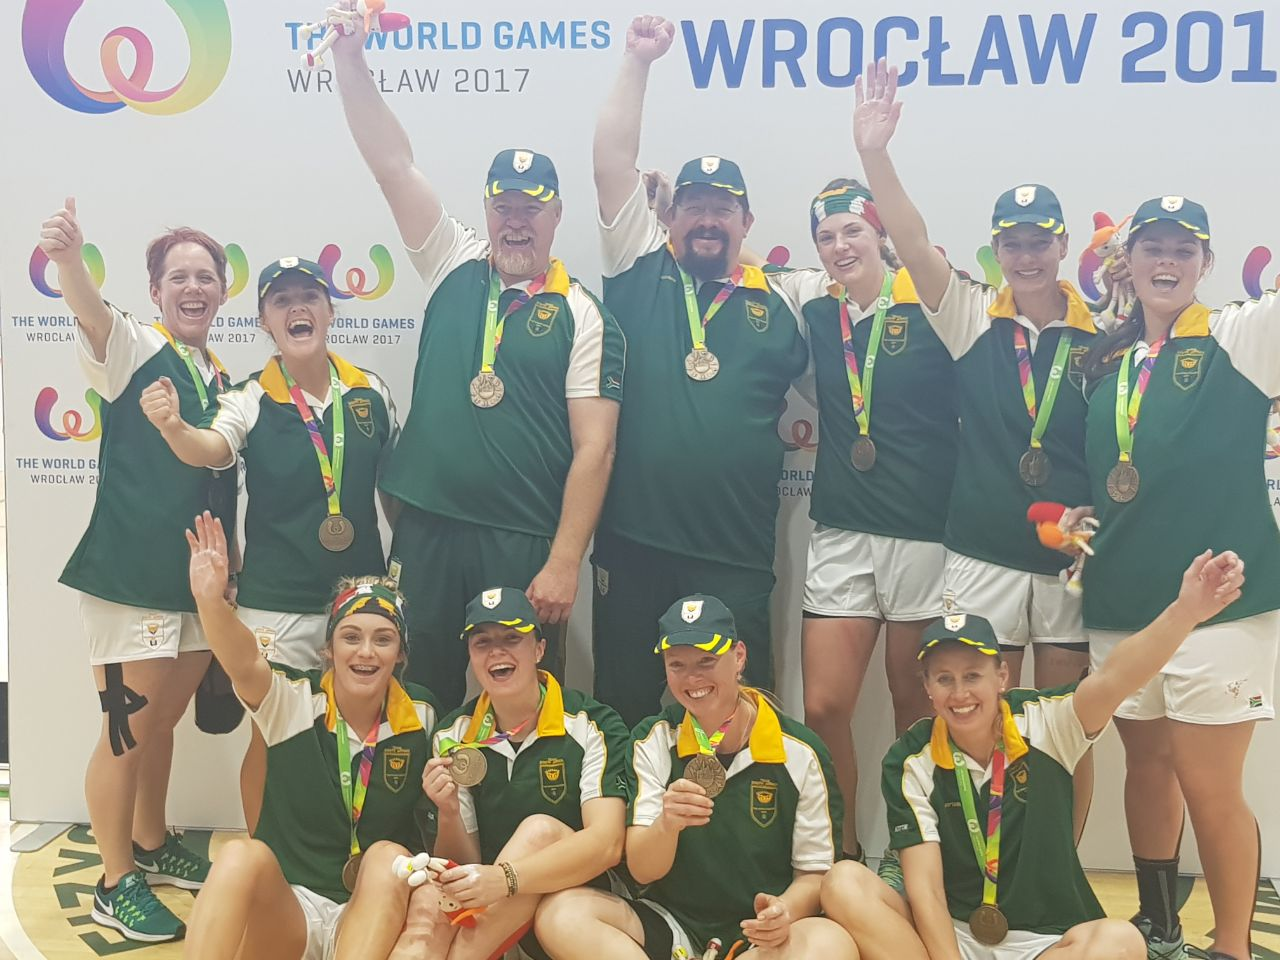 Tug-of-war team win SA's only medal at 2017 World Games